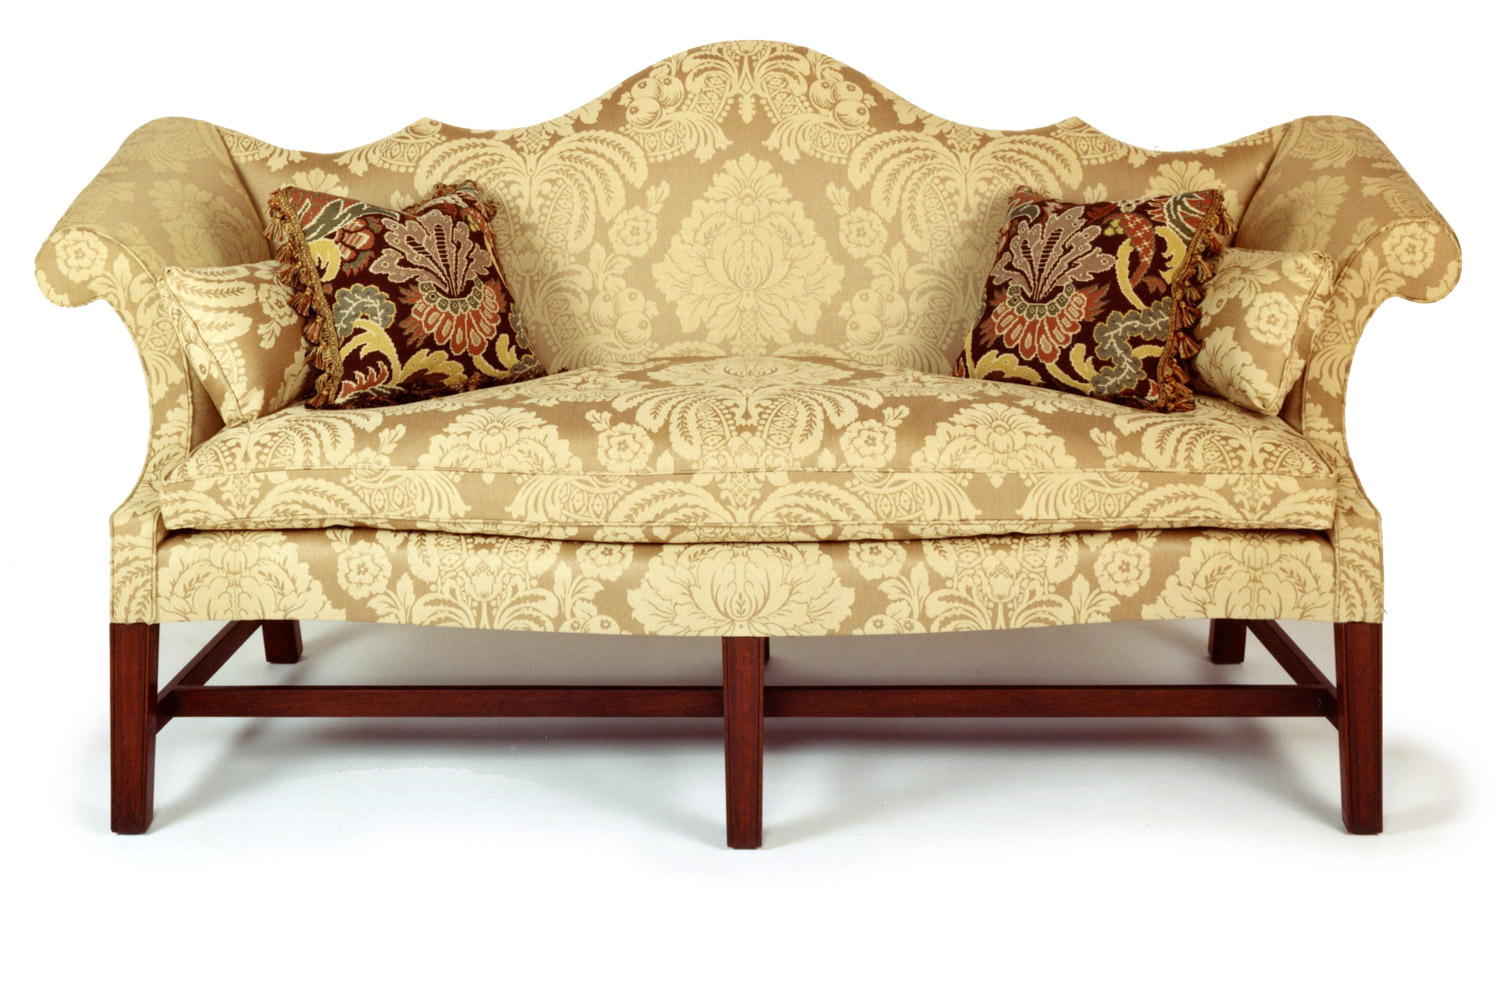 andersen  stauffer furniture makers  seating  chester county  - see seating gallery